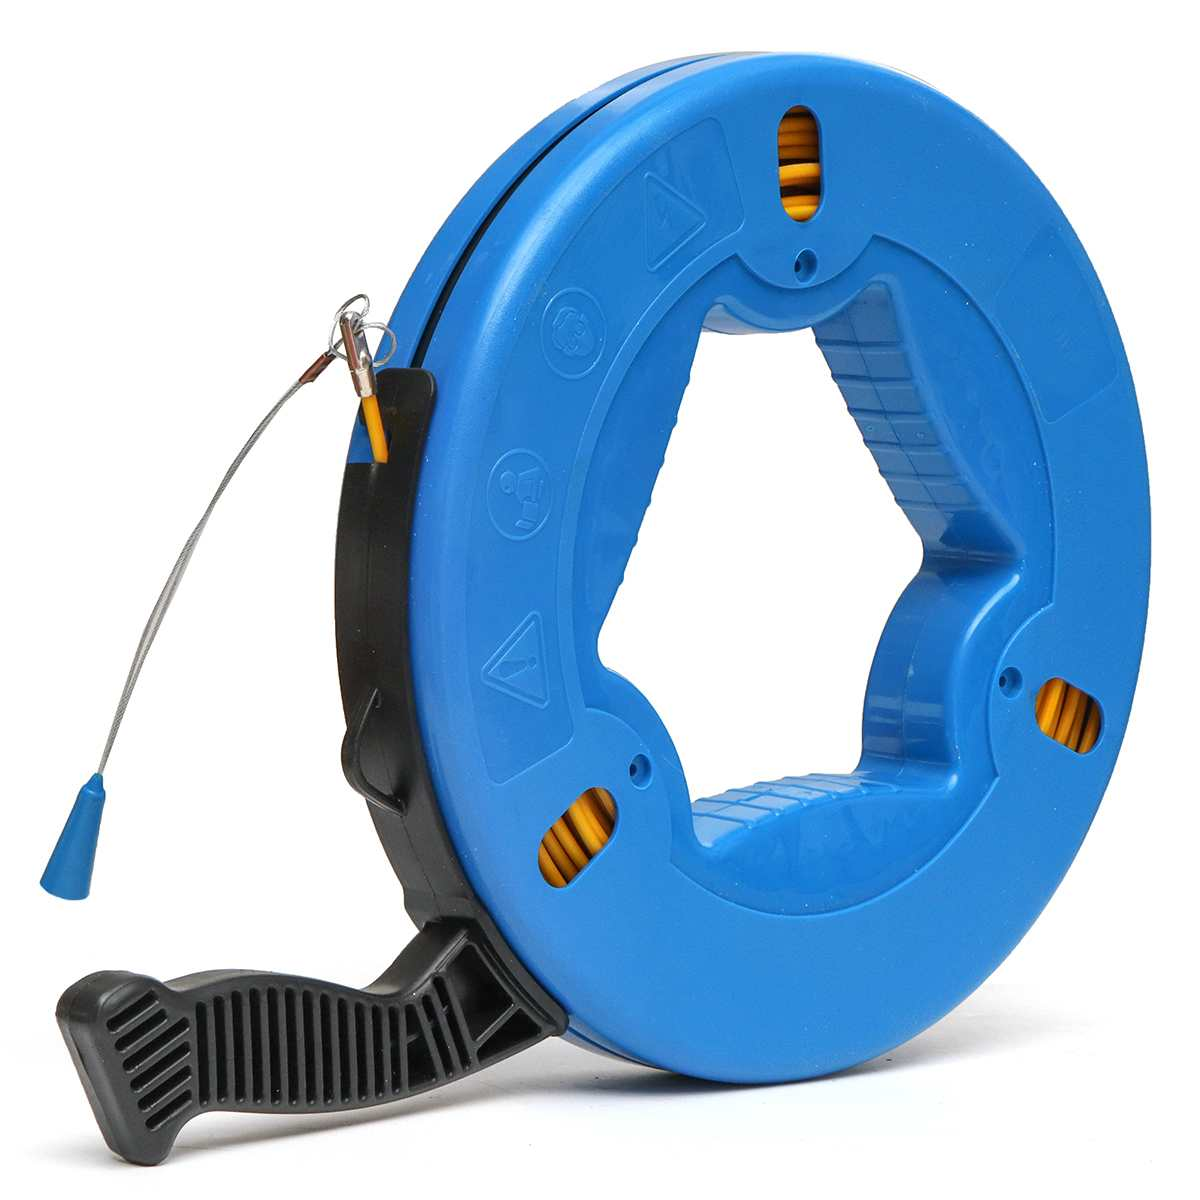 45m/60m/70m 4mm Cable Puller Fish Tape Blue Cable Fiberglass Fish Tape Reel Puller Nylon Metal Wall Wire Conduit ABS Plastic45m/60m/70m 4mm Cable Puller Fish Tape Blue Cable Fiberglass Fish Tape Reel Puller Nylon Metal Wall Wire Conduit ABS Plastic